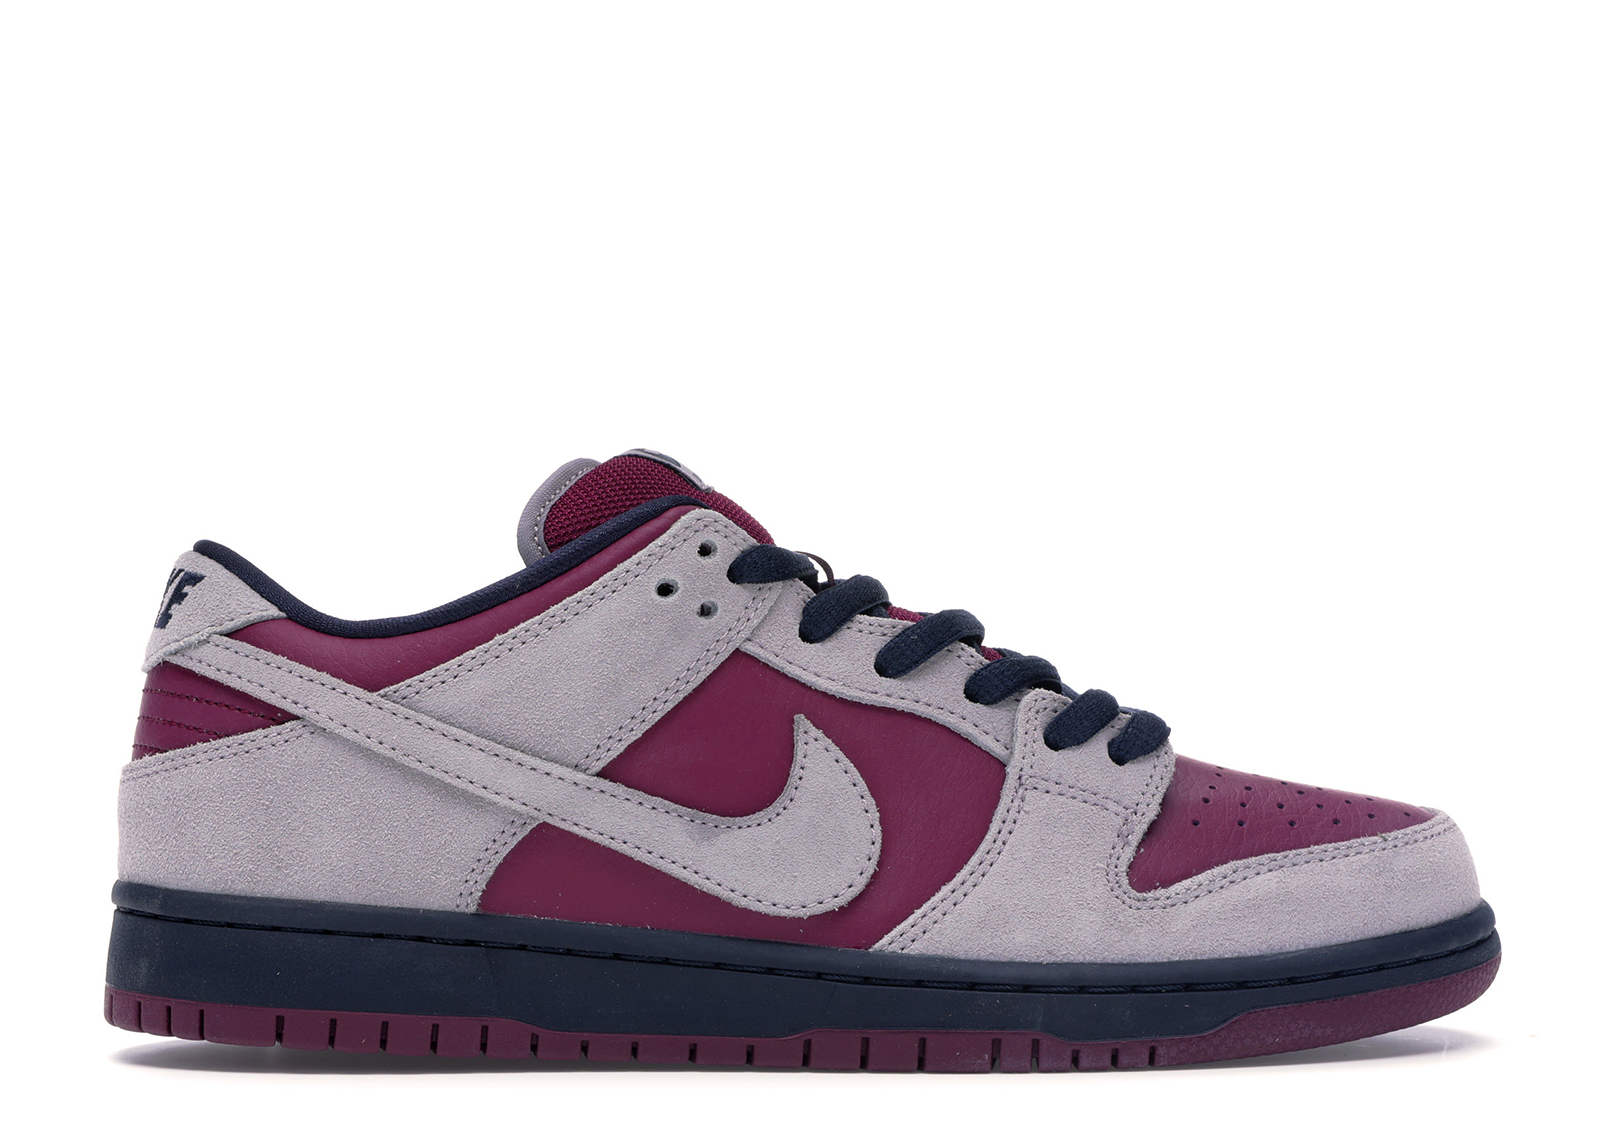 Nike SB Dunk Low Atmosphere Grey True Berry BQ6817 001